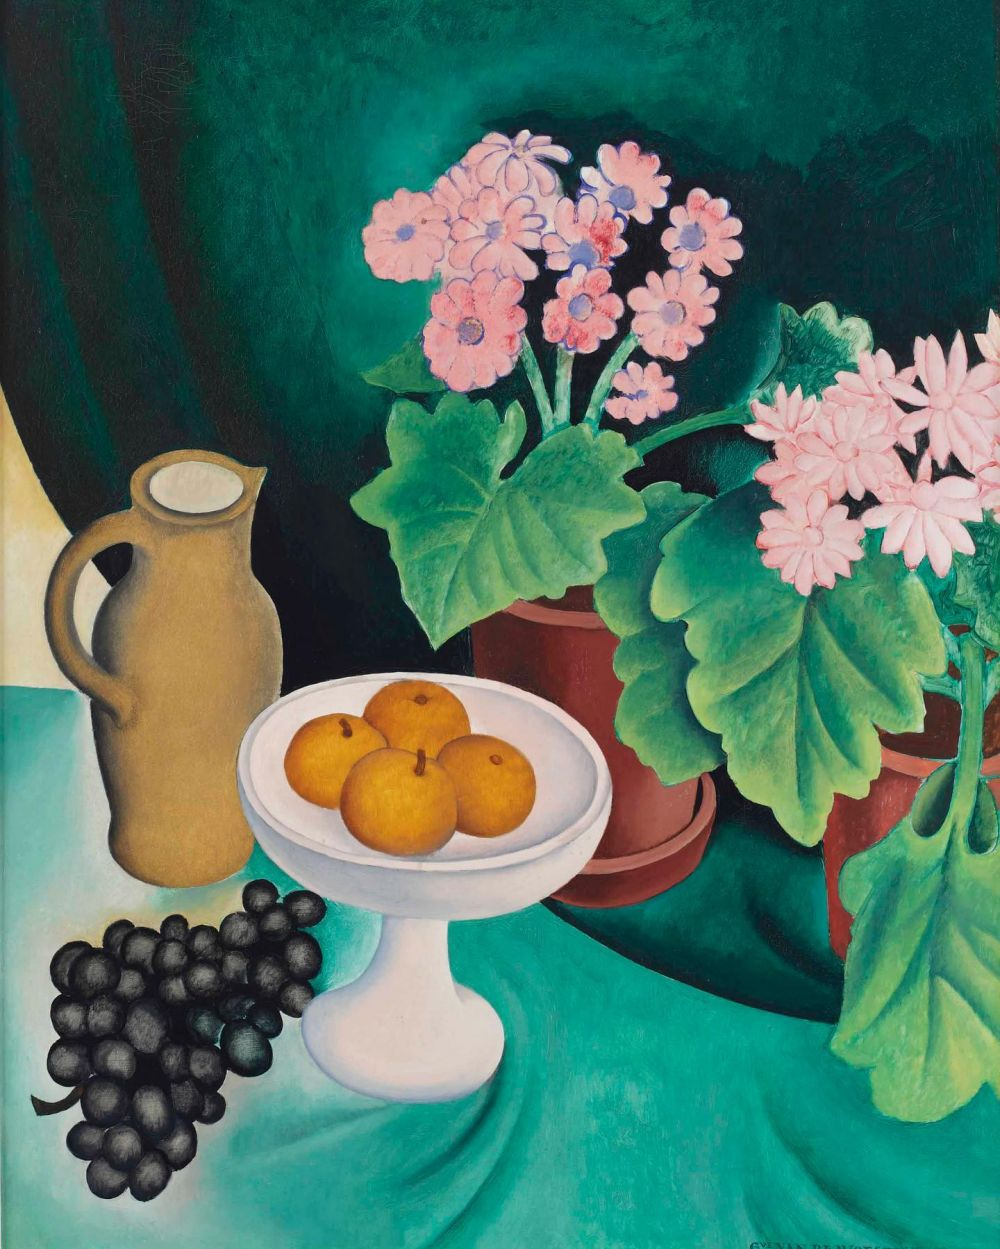 'Derniers fruits premières fleurs' Gustave Van De Woestyne, 1928  We'll be sharing a series of inspiring still life paintings by Gustave Van De Woestyne. Our latest photoshoot was located at the Van Buuren museum in Brussels, where we discovered lots of paintings from the Belgian painter. We fell in love with his use of colour and the way he captured elements of the daily things in life in such a sleek and colorful way. As we are spending a lot of time at home, we encourage you too to treasure the beauty of things that surround us every day. 🧡🍇🍎